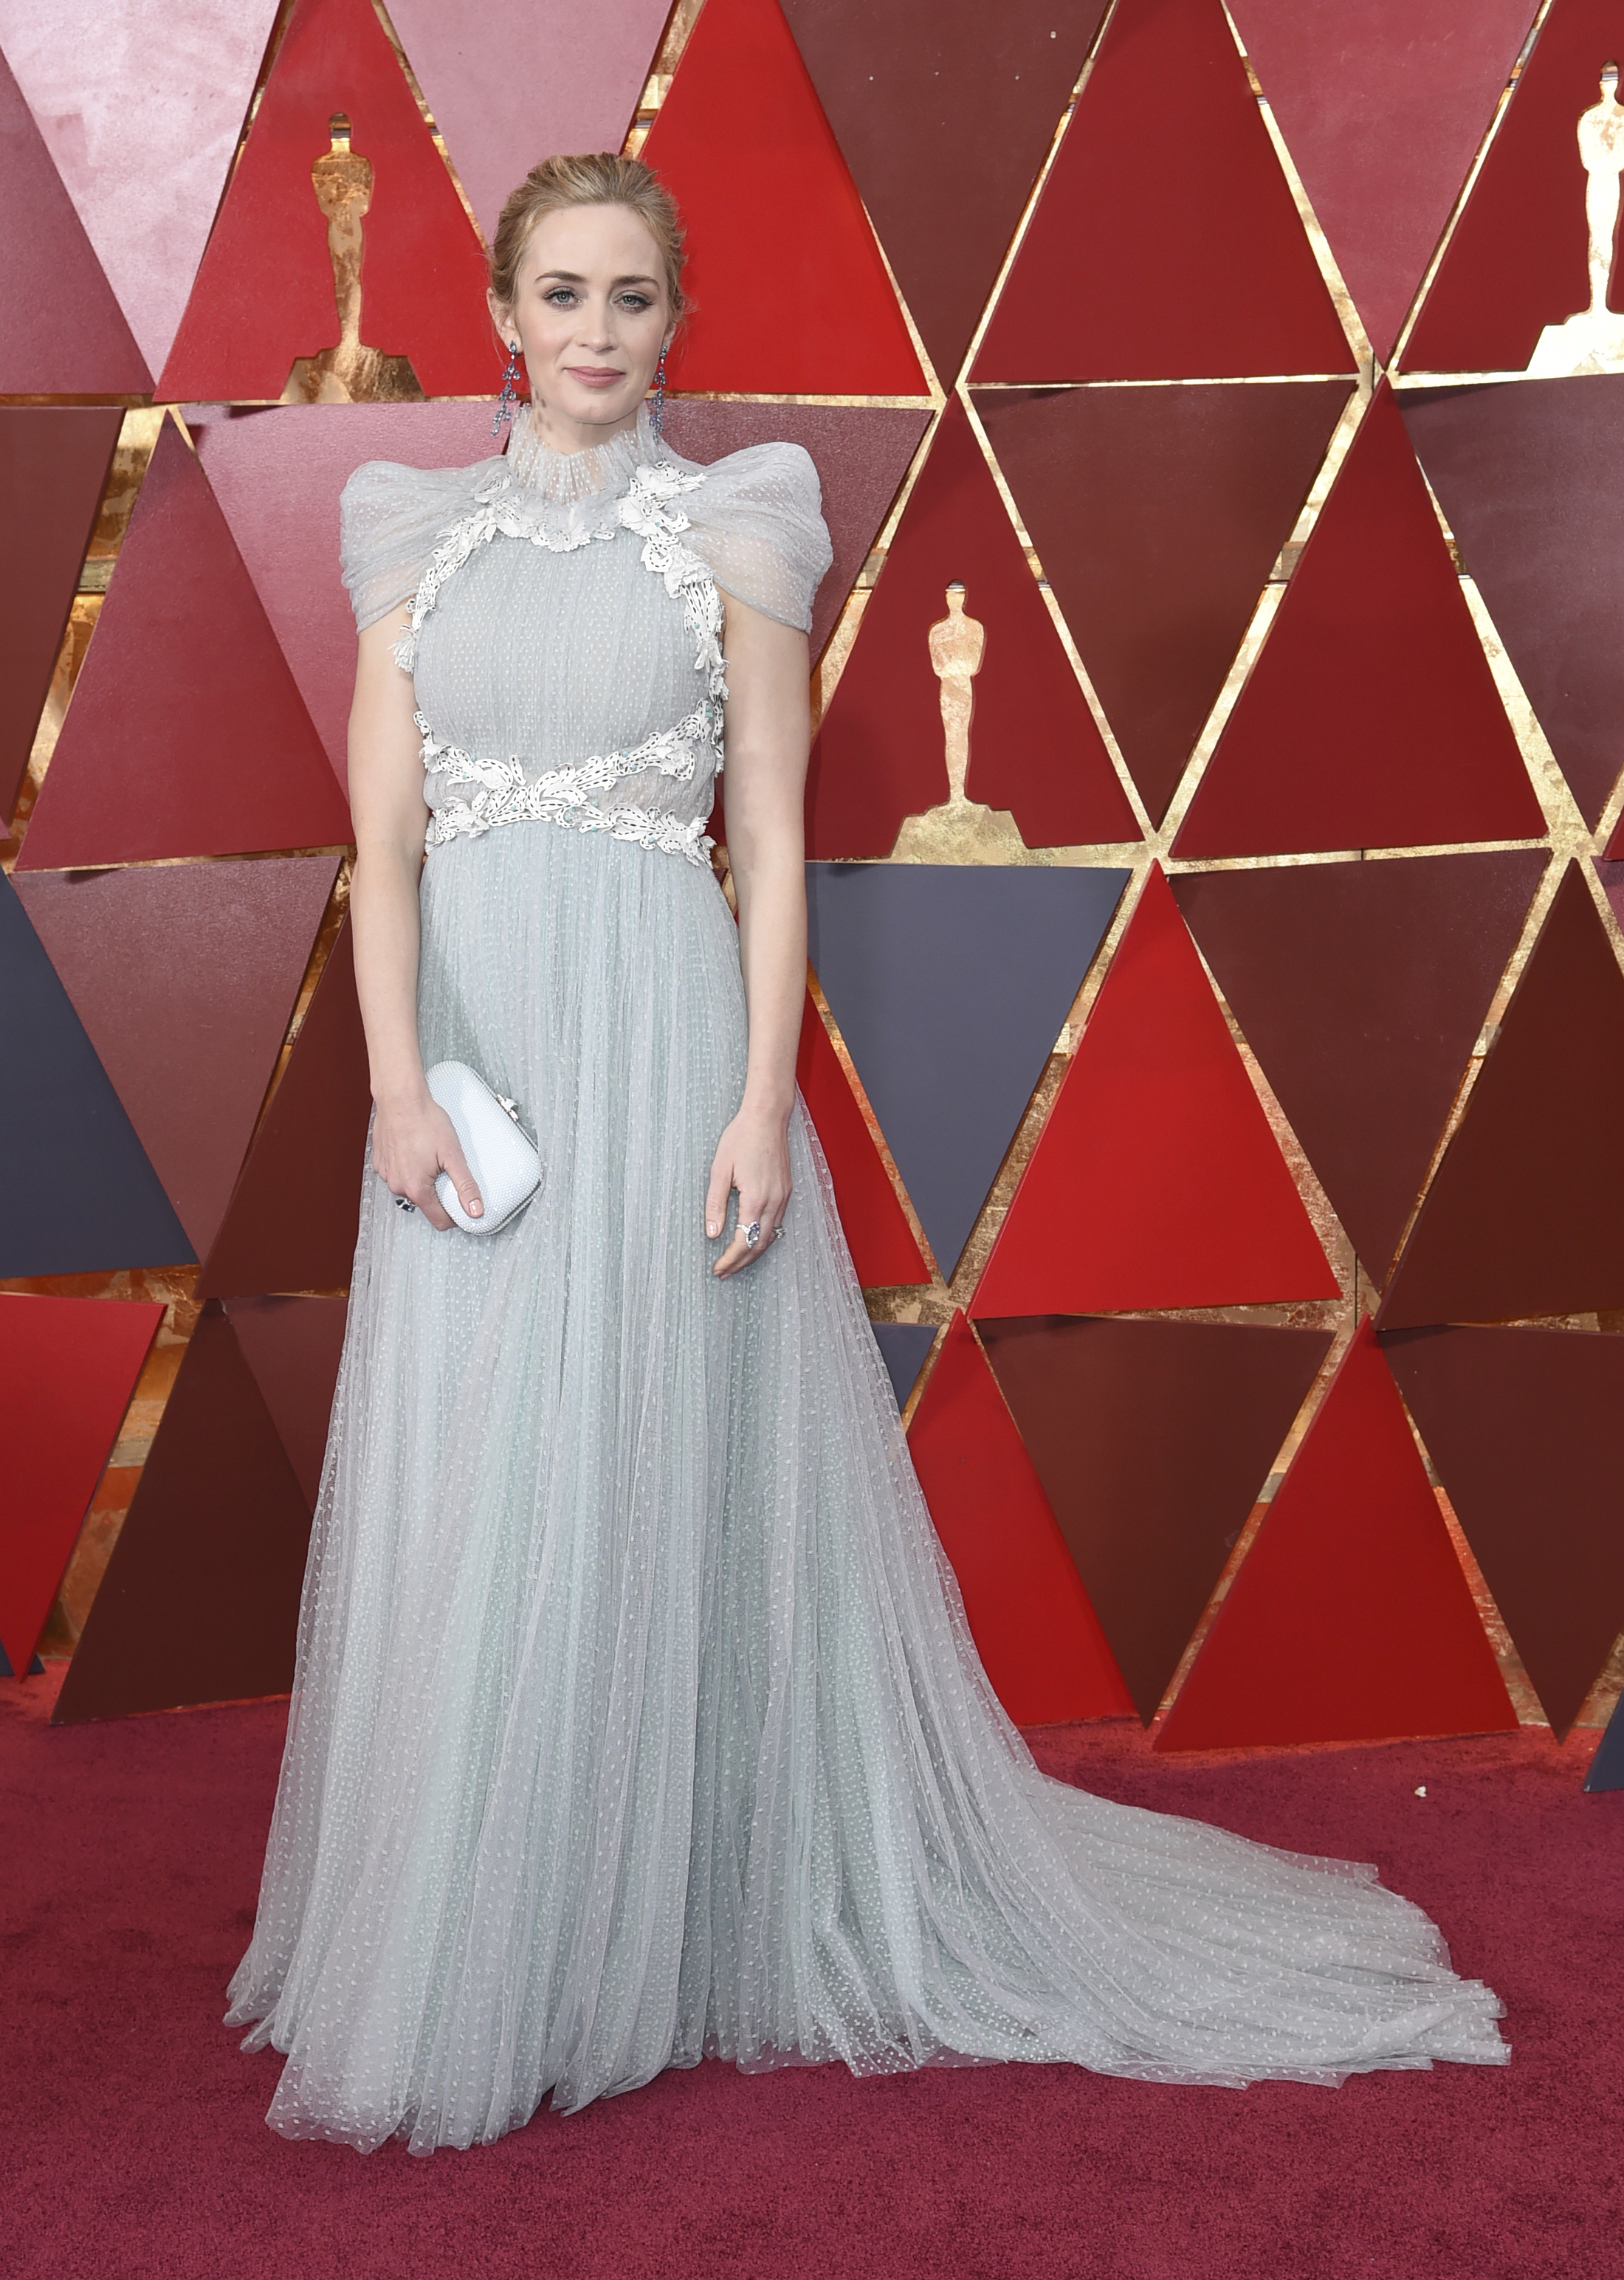 <div class='meta'><div class='origin-logo' data-origin='none'></div><span class='caption-text' data-credit='Richard Shotwell/Invision/AP'>Emily Blunt of ''Mary Poppins Returns'' arrives at the Oscars on Sunday, March 4, 2018, at the Dolby Theatre in Los Angeles.</span></div>